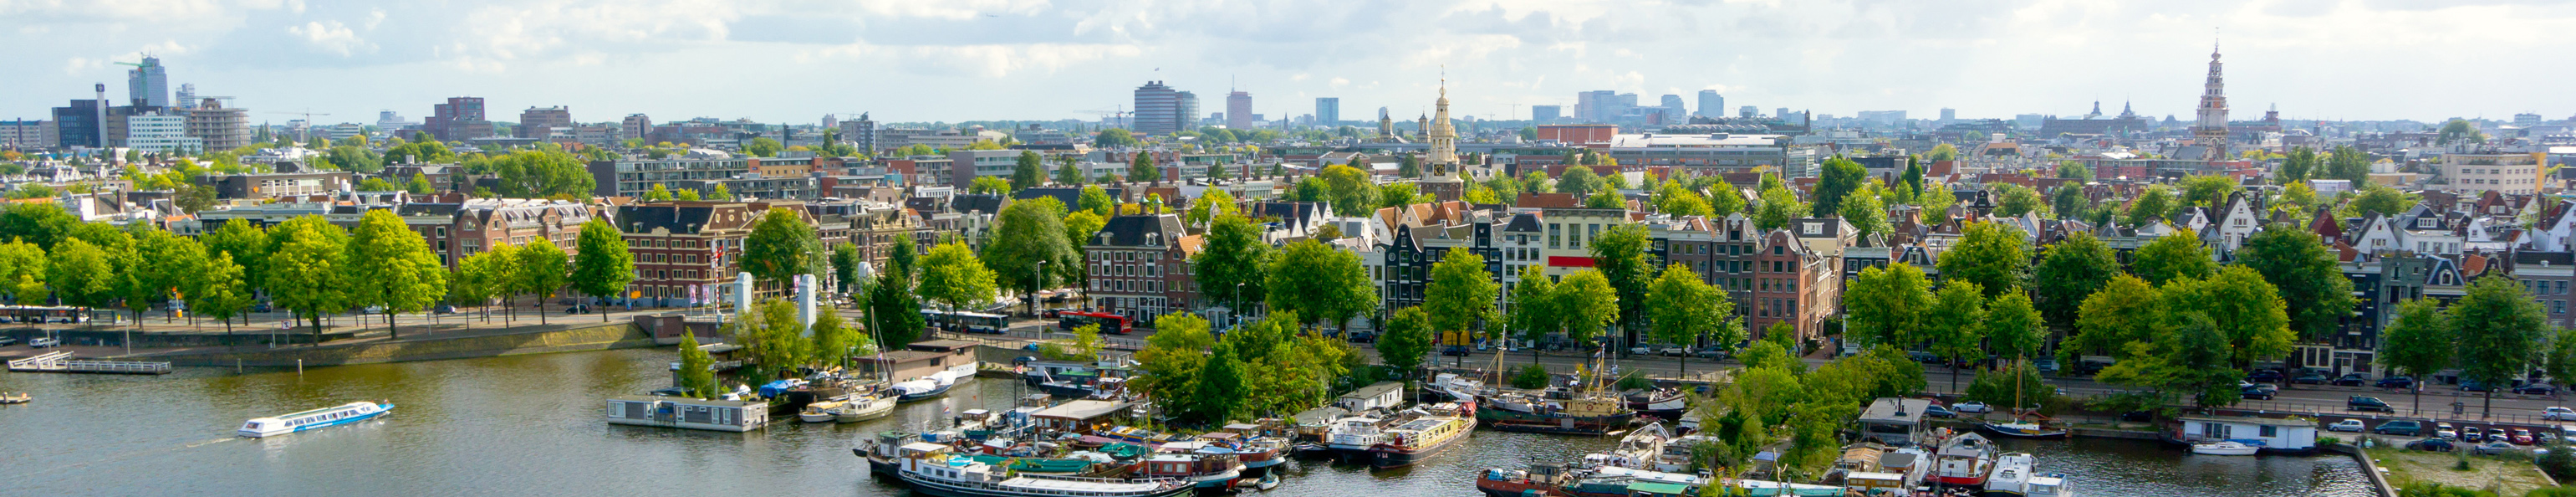 Old Amsterdam city | Cleerdin & Hamer advocaten